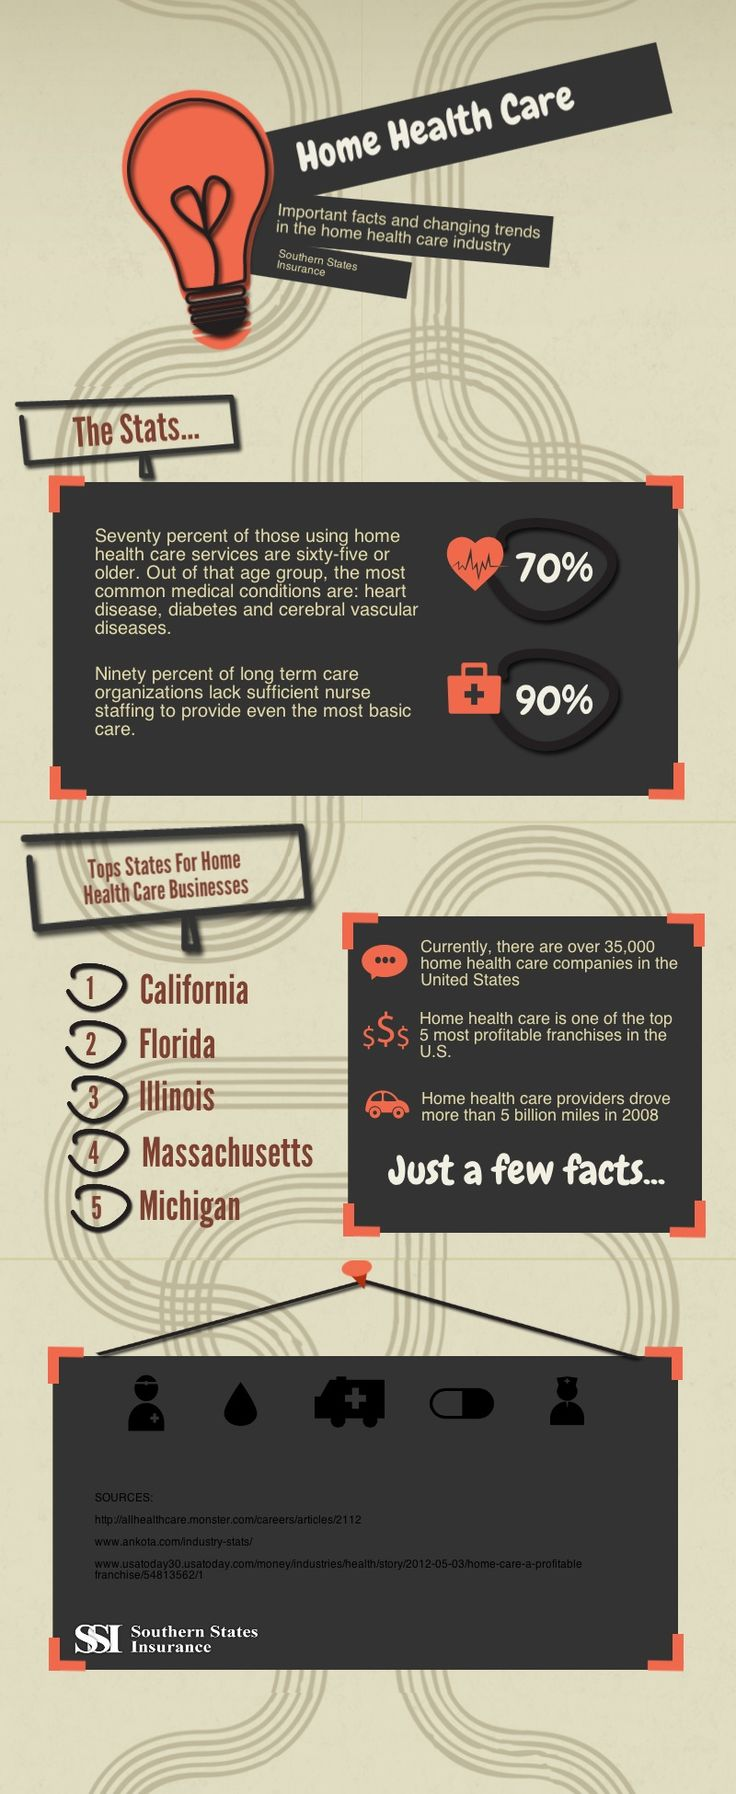 Home Health Care   #Infographic made in @Piktochart